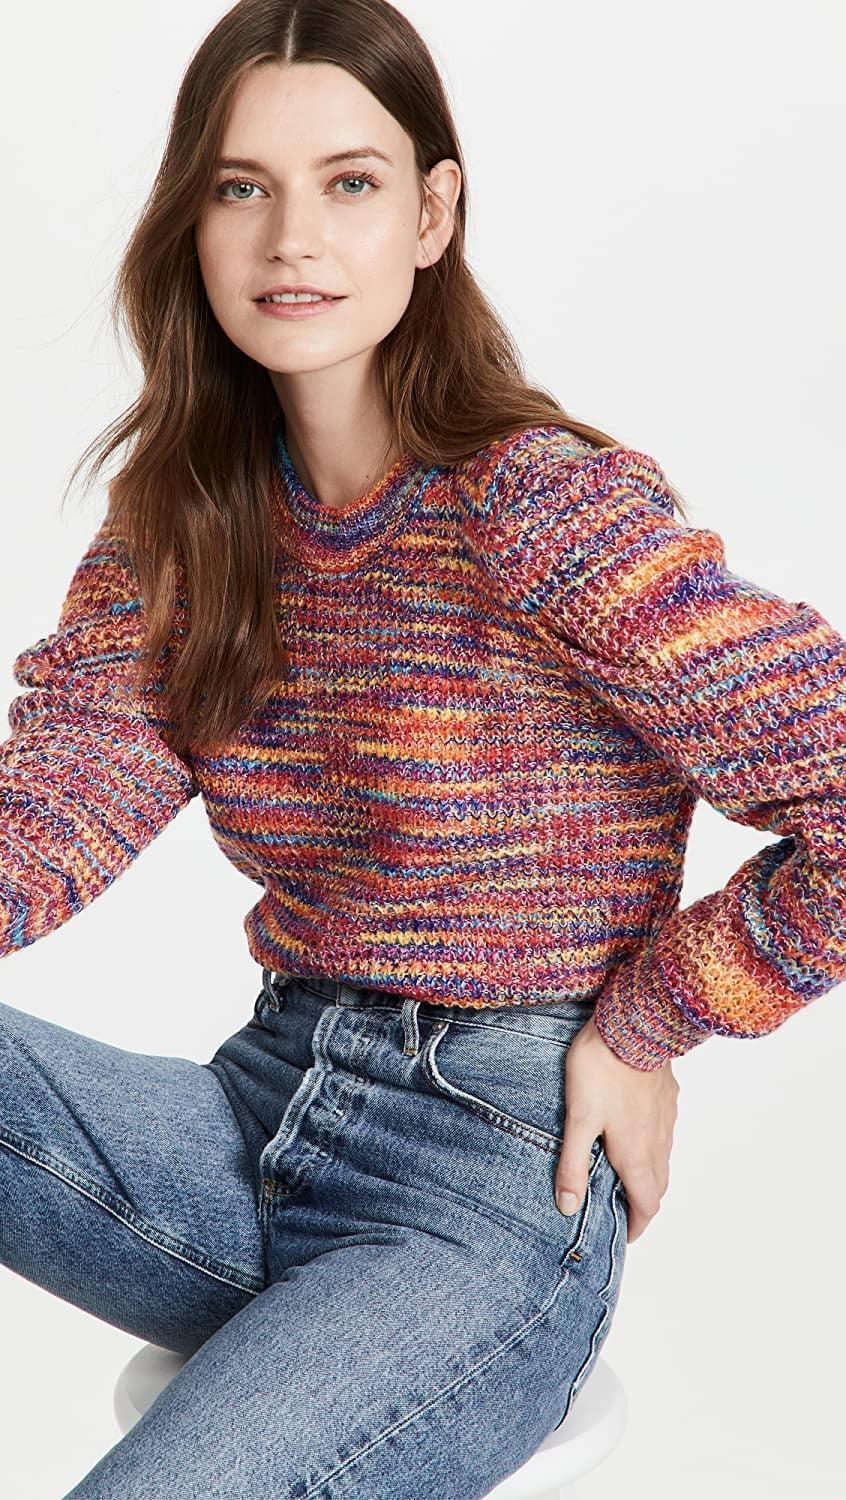 <p>Add some color to your wardrobe with this vibrant <span>En Saison Puff Sleeve Space Dye Crew Neck Sweater</span> ($75). It looks great with classic denim or a black skirt.</p>